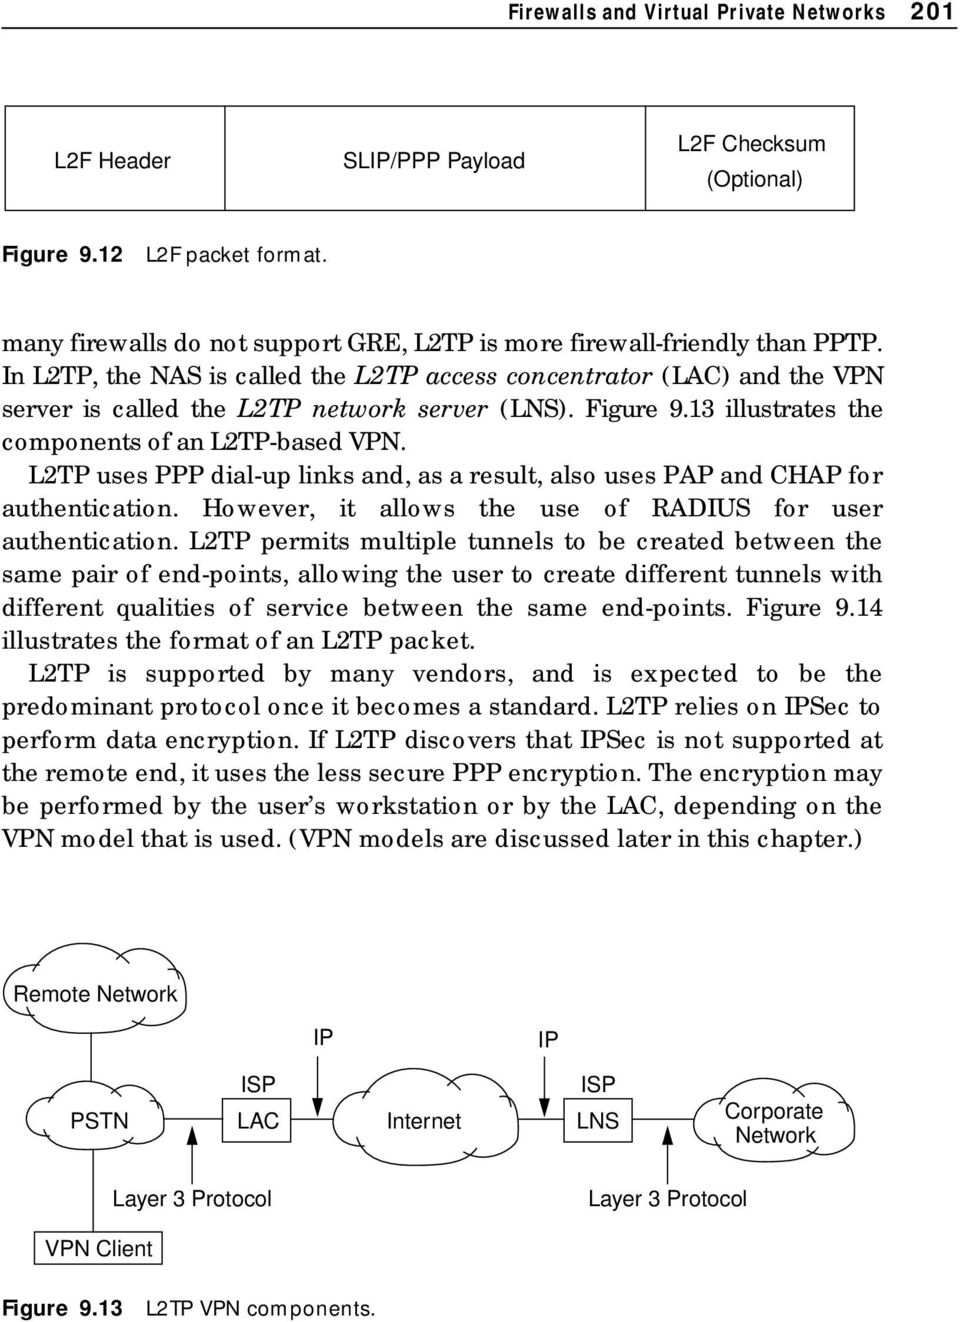 Figure 9.13 illustrates the components of an L2TP-based VPN. L2TP uses PPP dial-up links and, as a result, also uses PAP and CHAP for authentication.